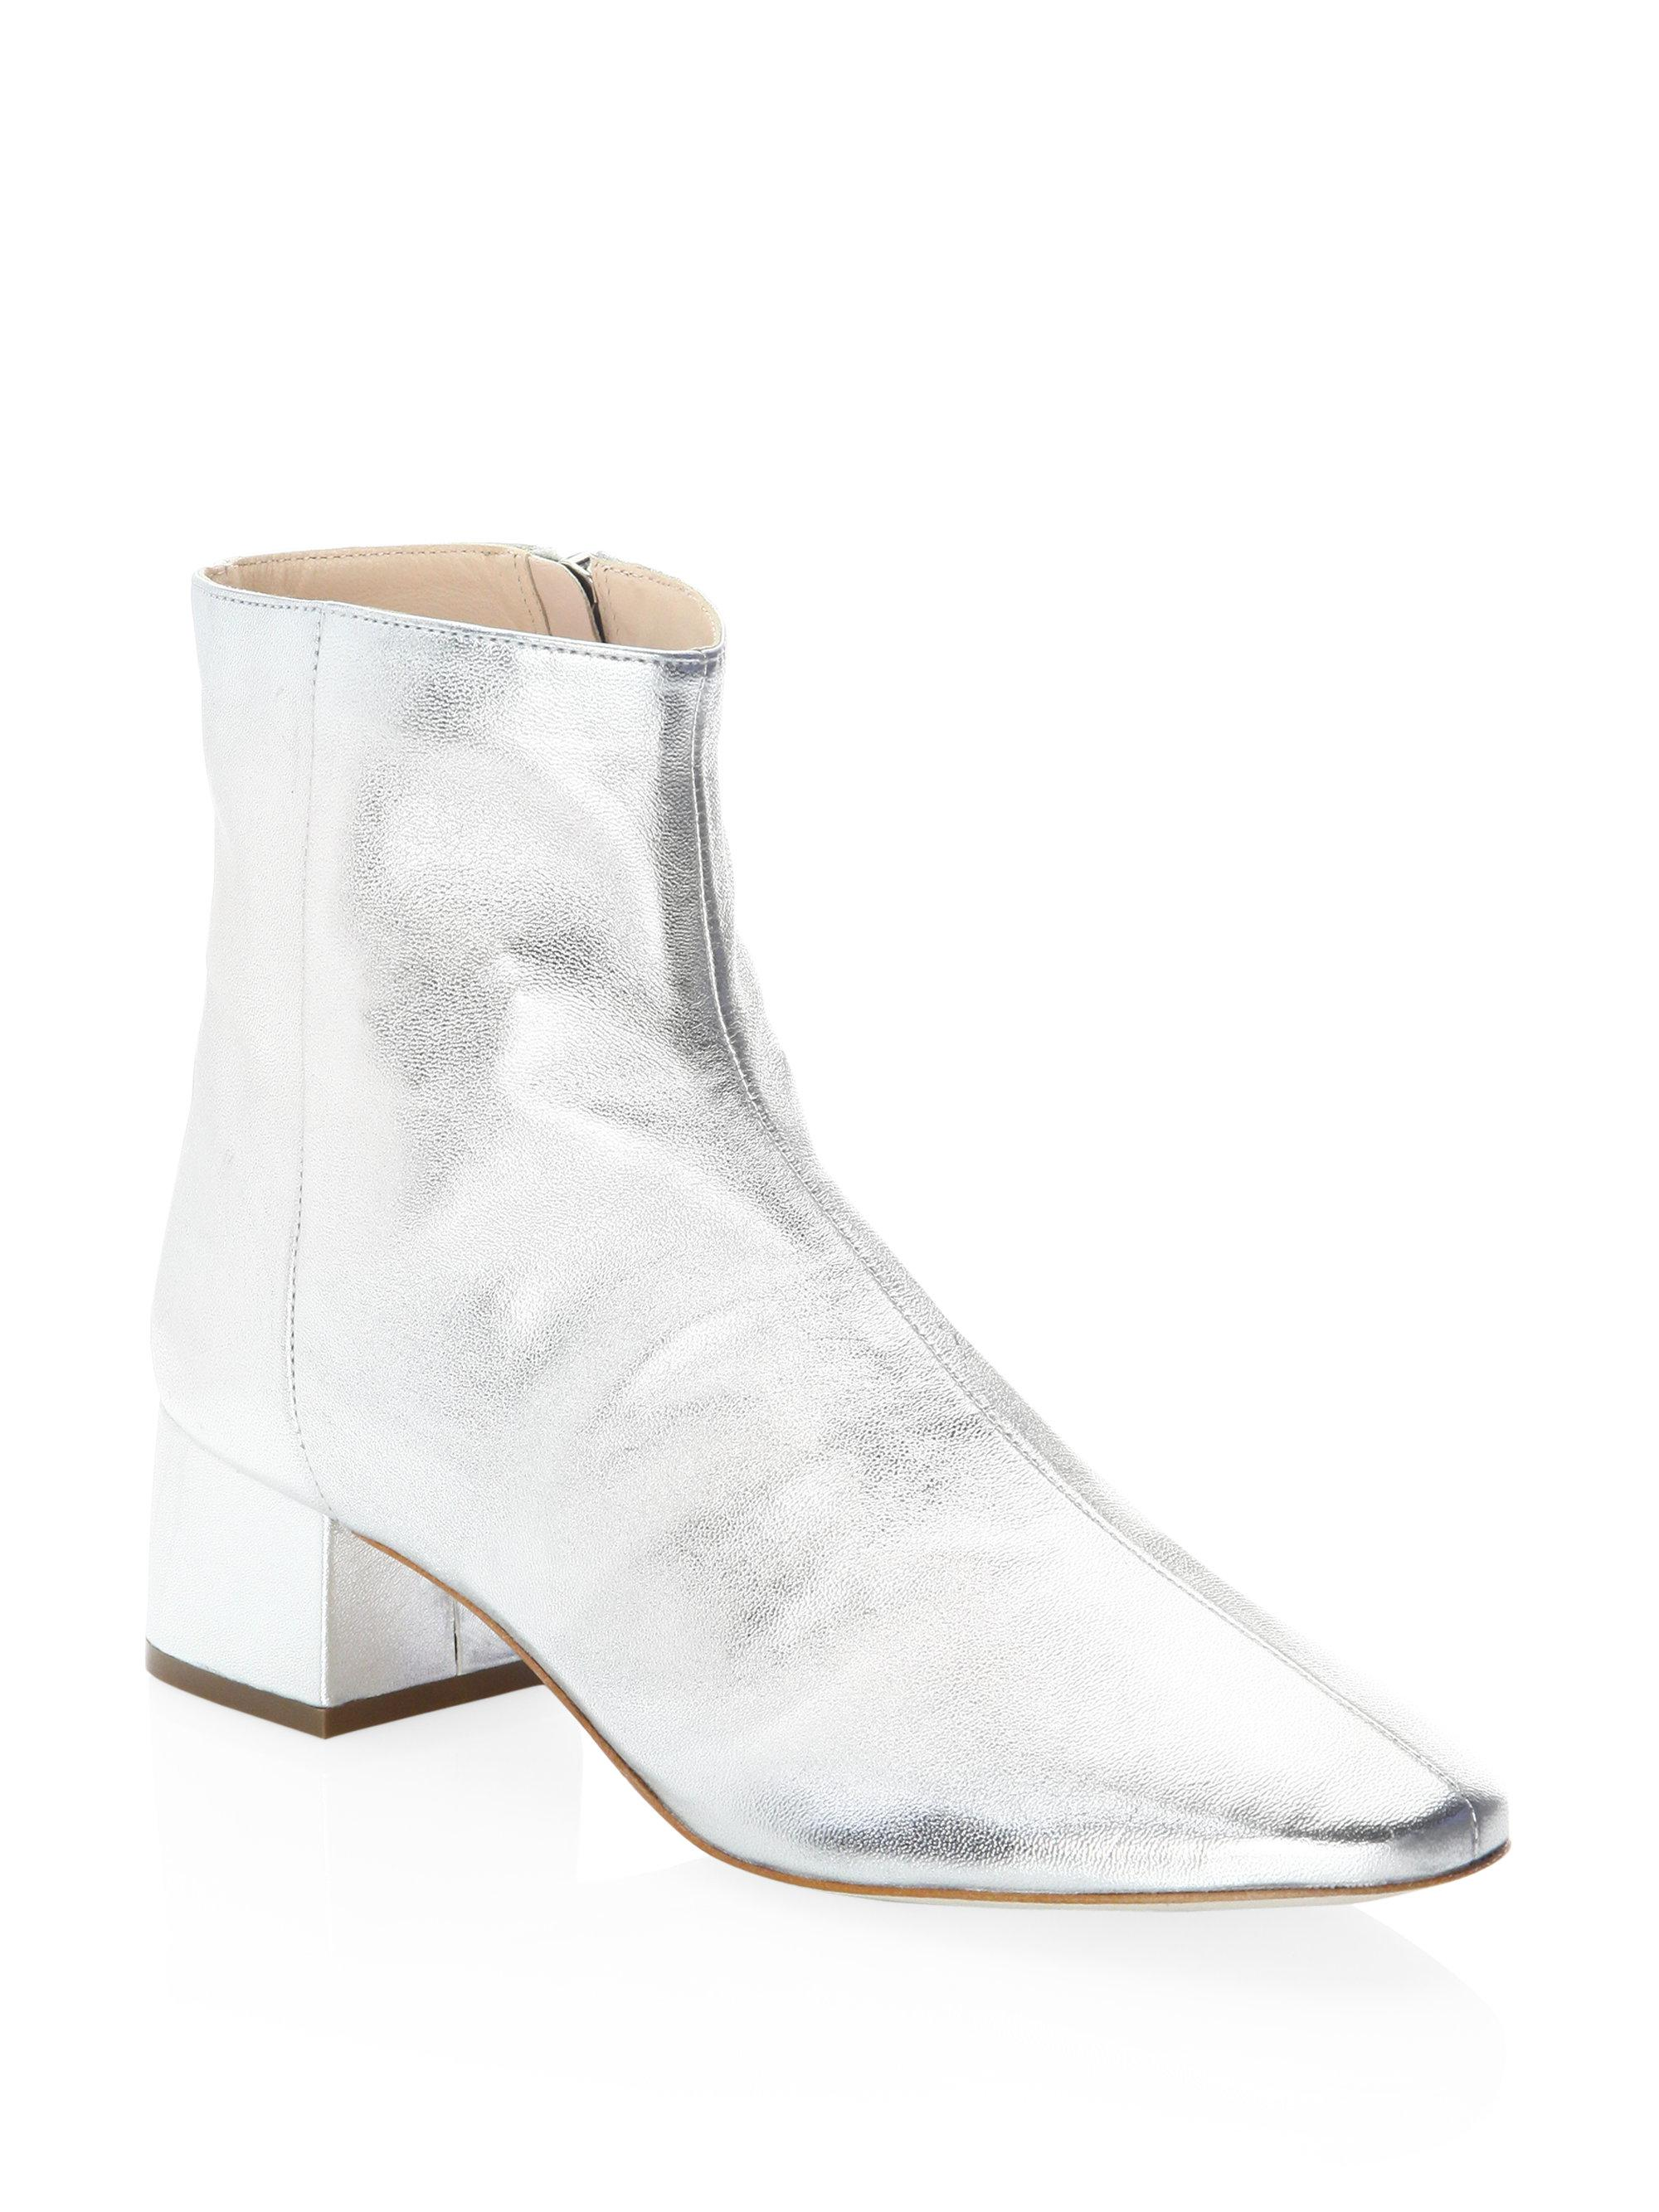 Loeffler Randall Carter Ponyhair Booties buy cheap latest collections lowest price sale online buy cheap big sale cheap order 9pWI672